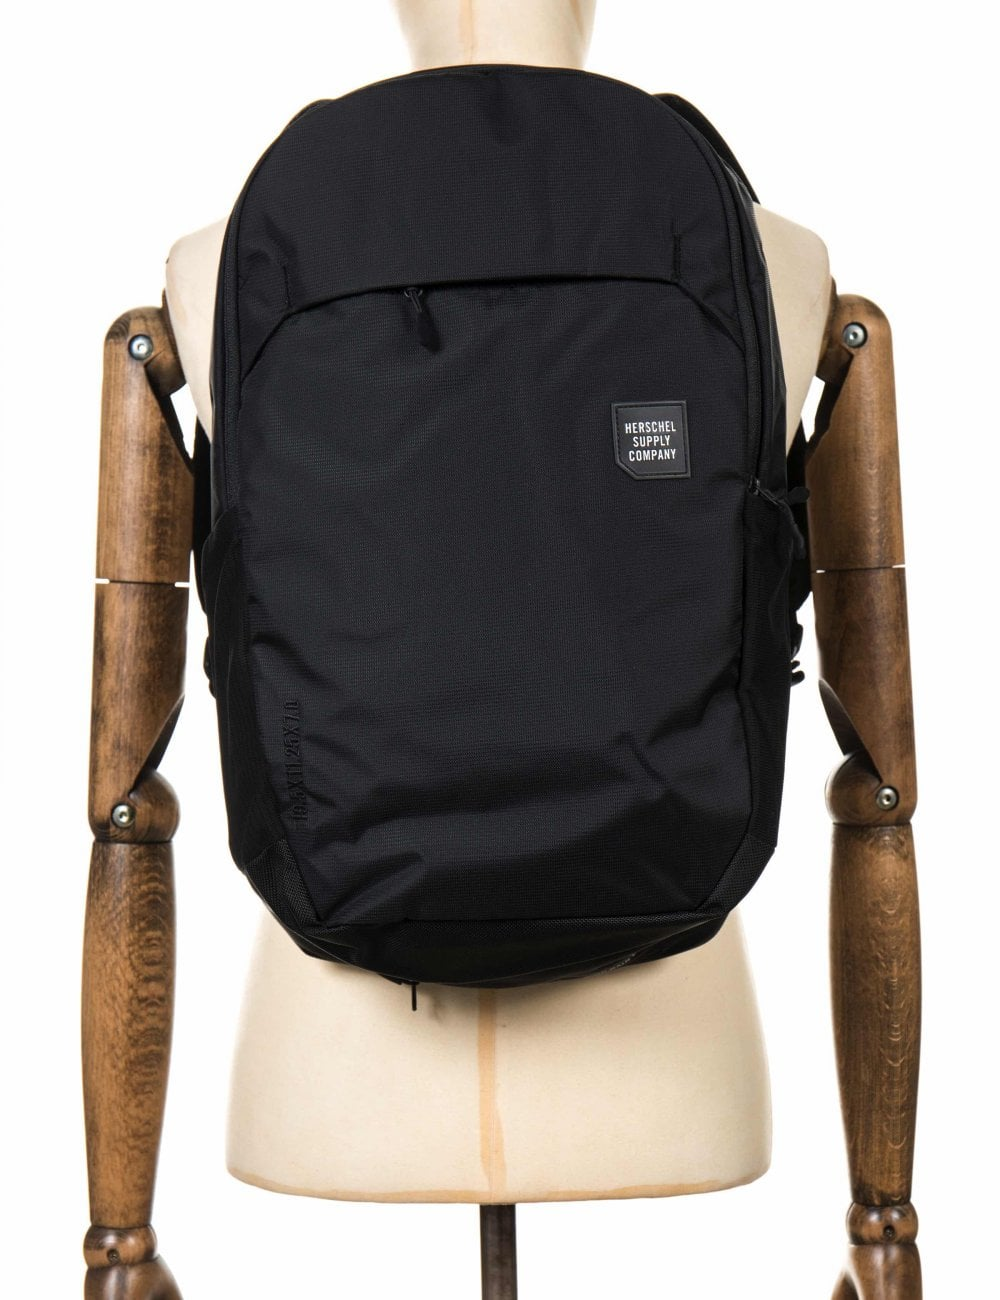 Herschel Supply Co Mammoth Backpack Large 23L - Black - Accessories ... b57471ef3ef05